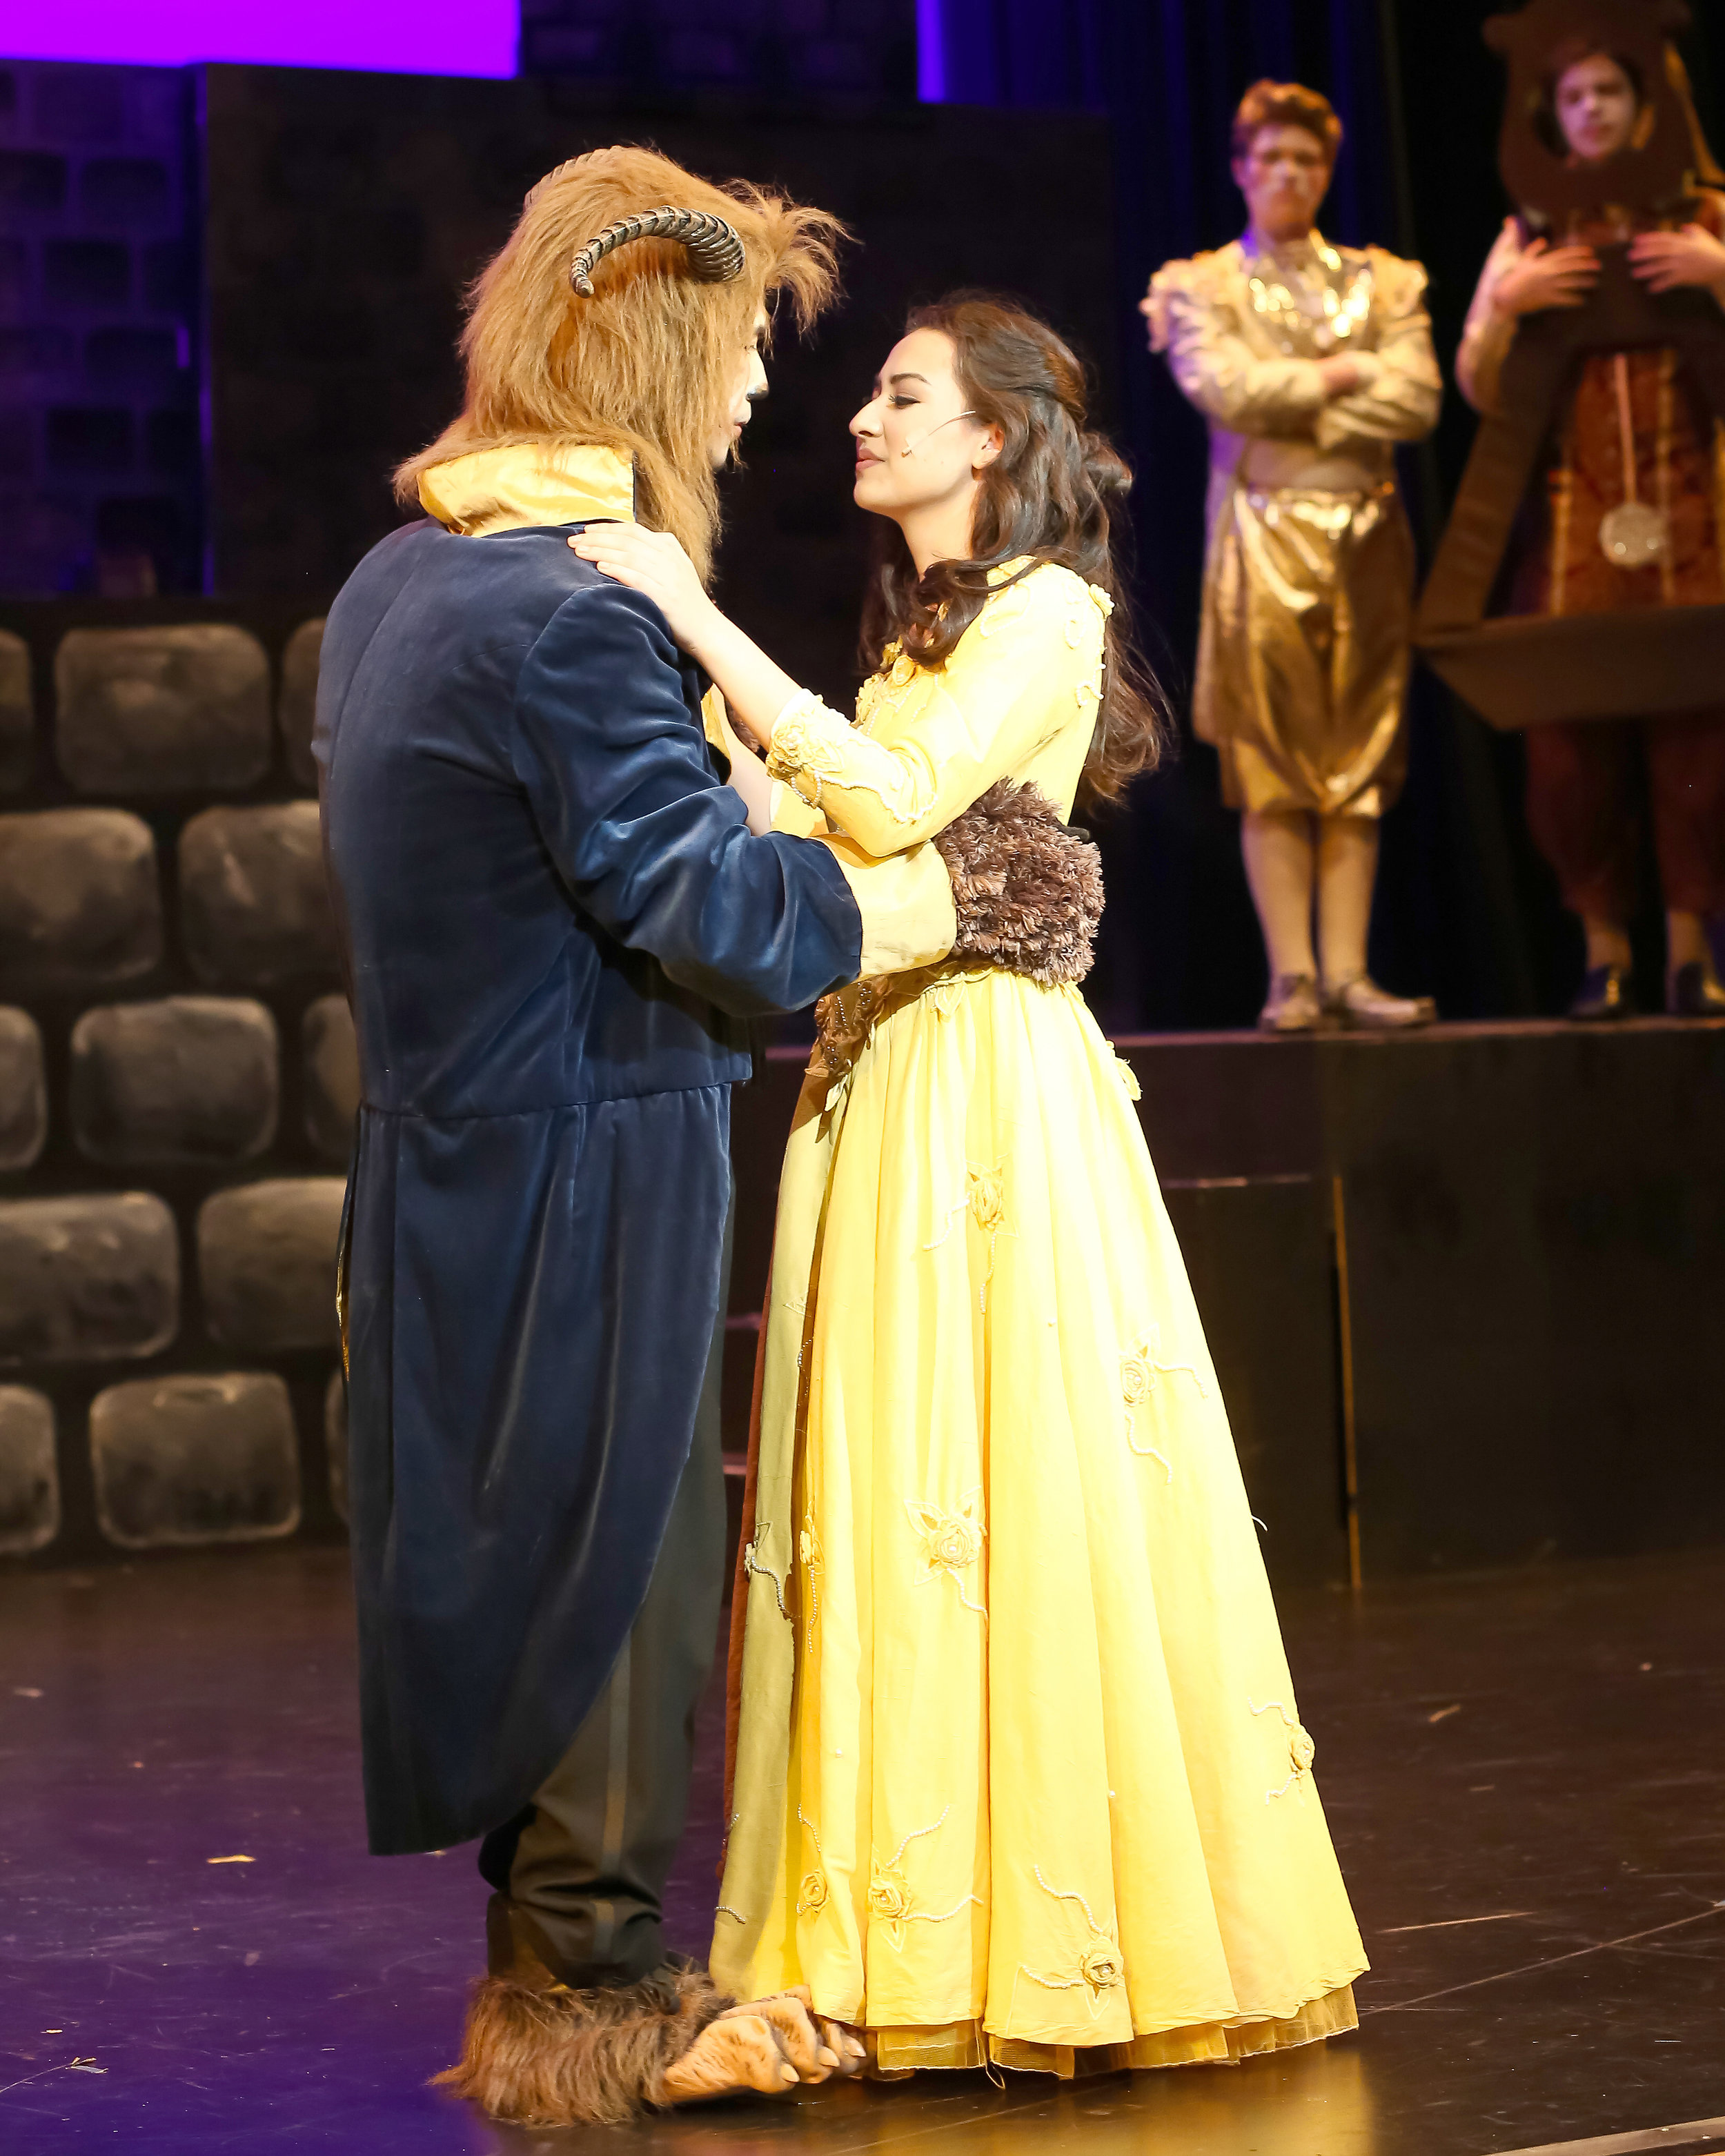 Lake Washington HS - Beauty and the Beast, 2018